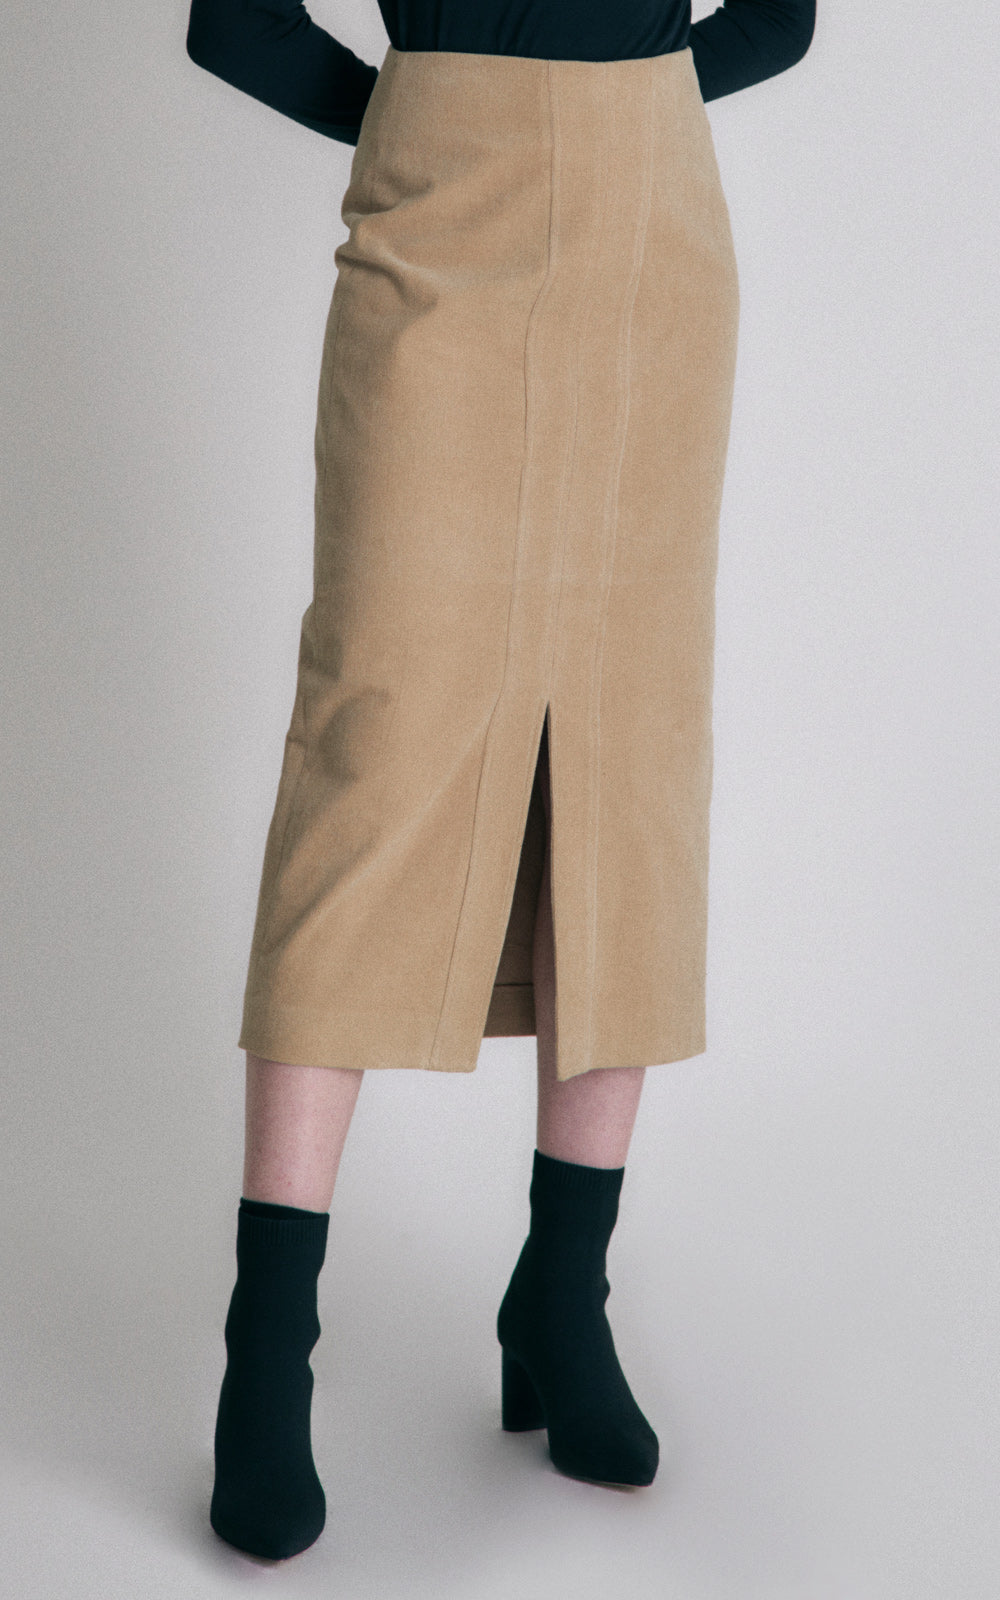 Hidden Forest Market Corduroy Pencil Skirt Khaki